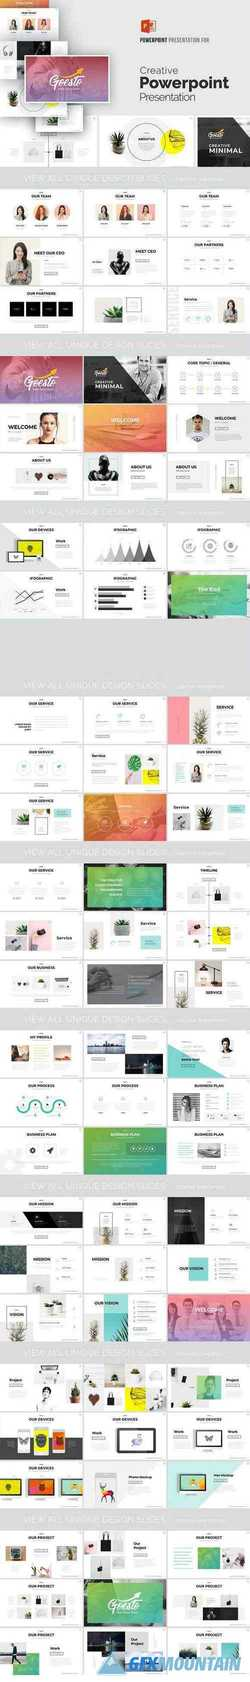 Creative Powerpoint Presentation 2911730